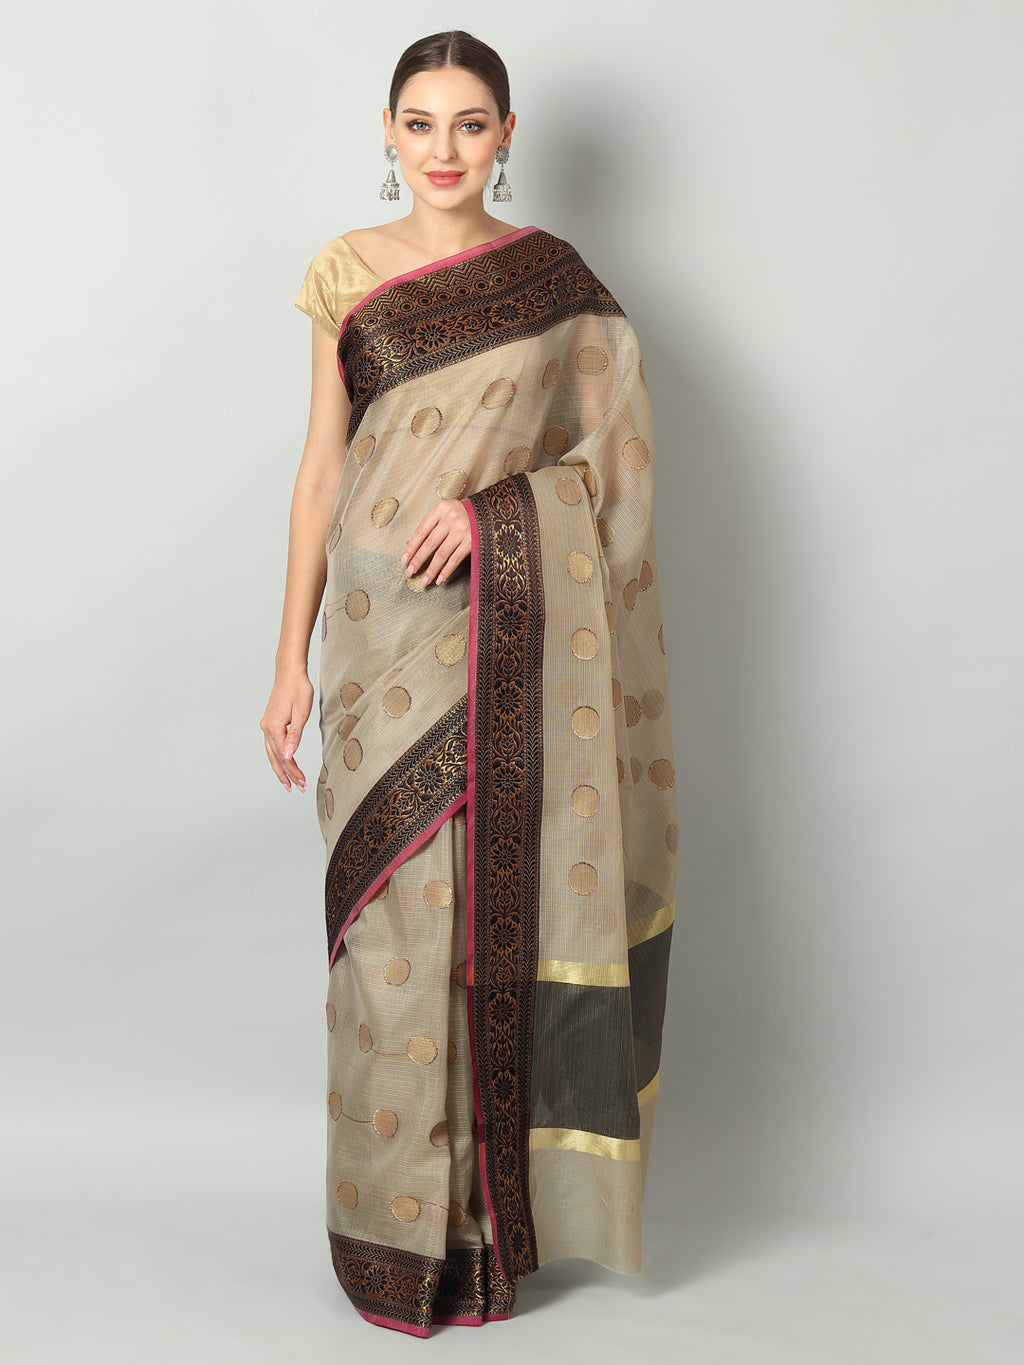 Beige/ Cream zari kota saree with gold zari & black booties and border